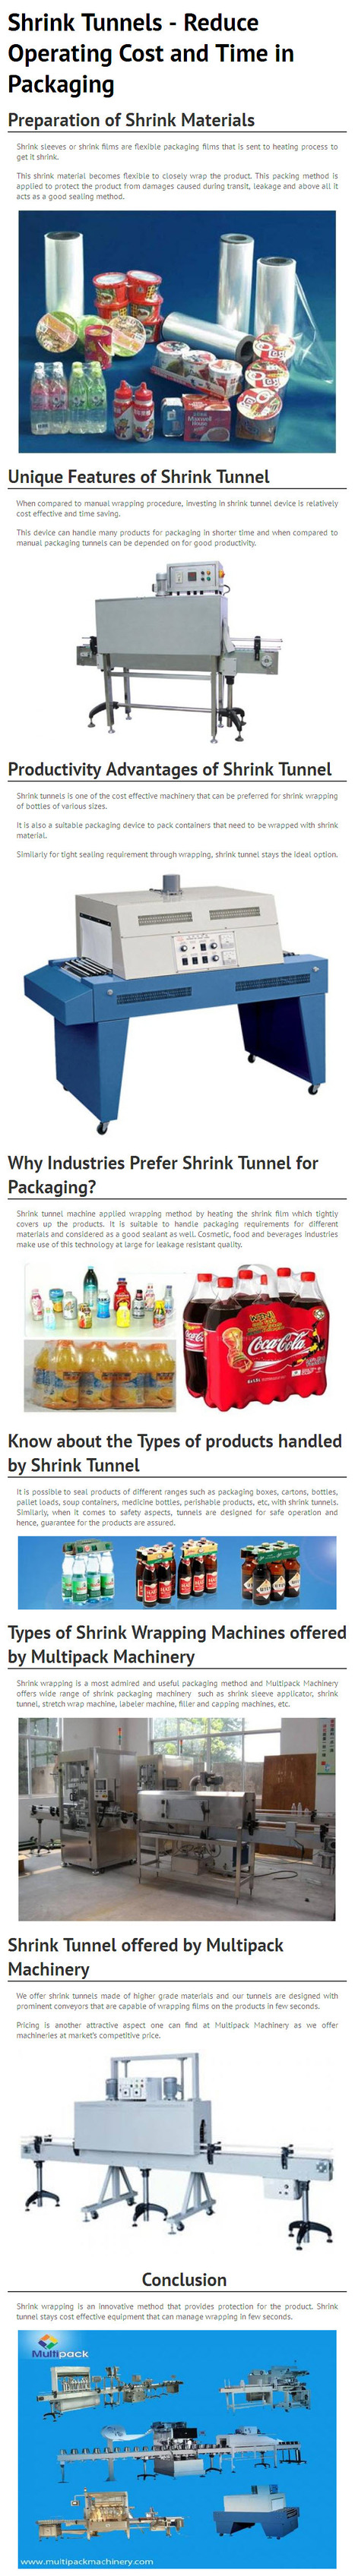 Shrink Tunnels - Reduce Operating Cost and Time in Packaging – by www.multipackmachinery.com | Shrink Tunnel | Scoop.it